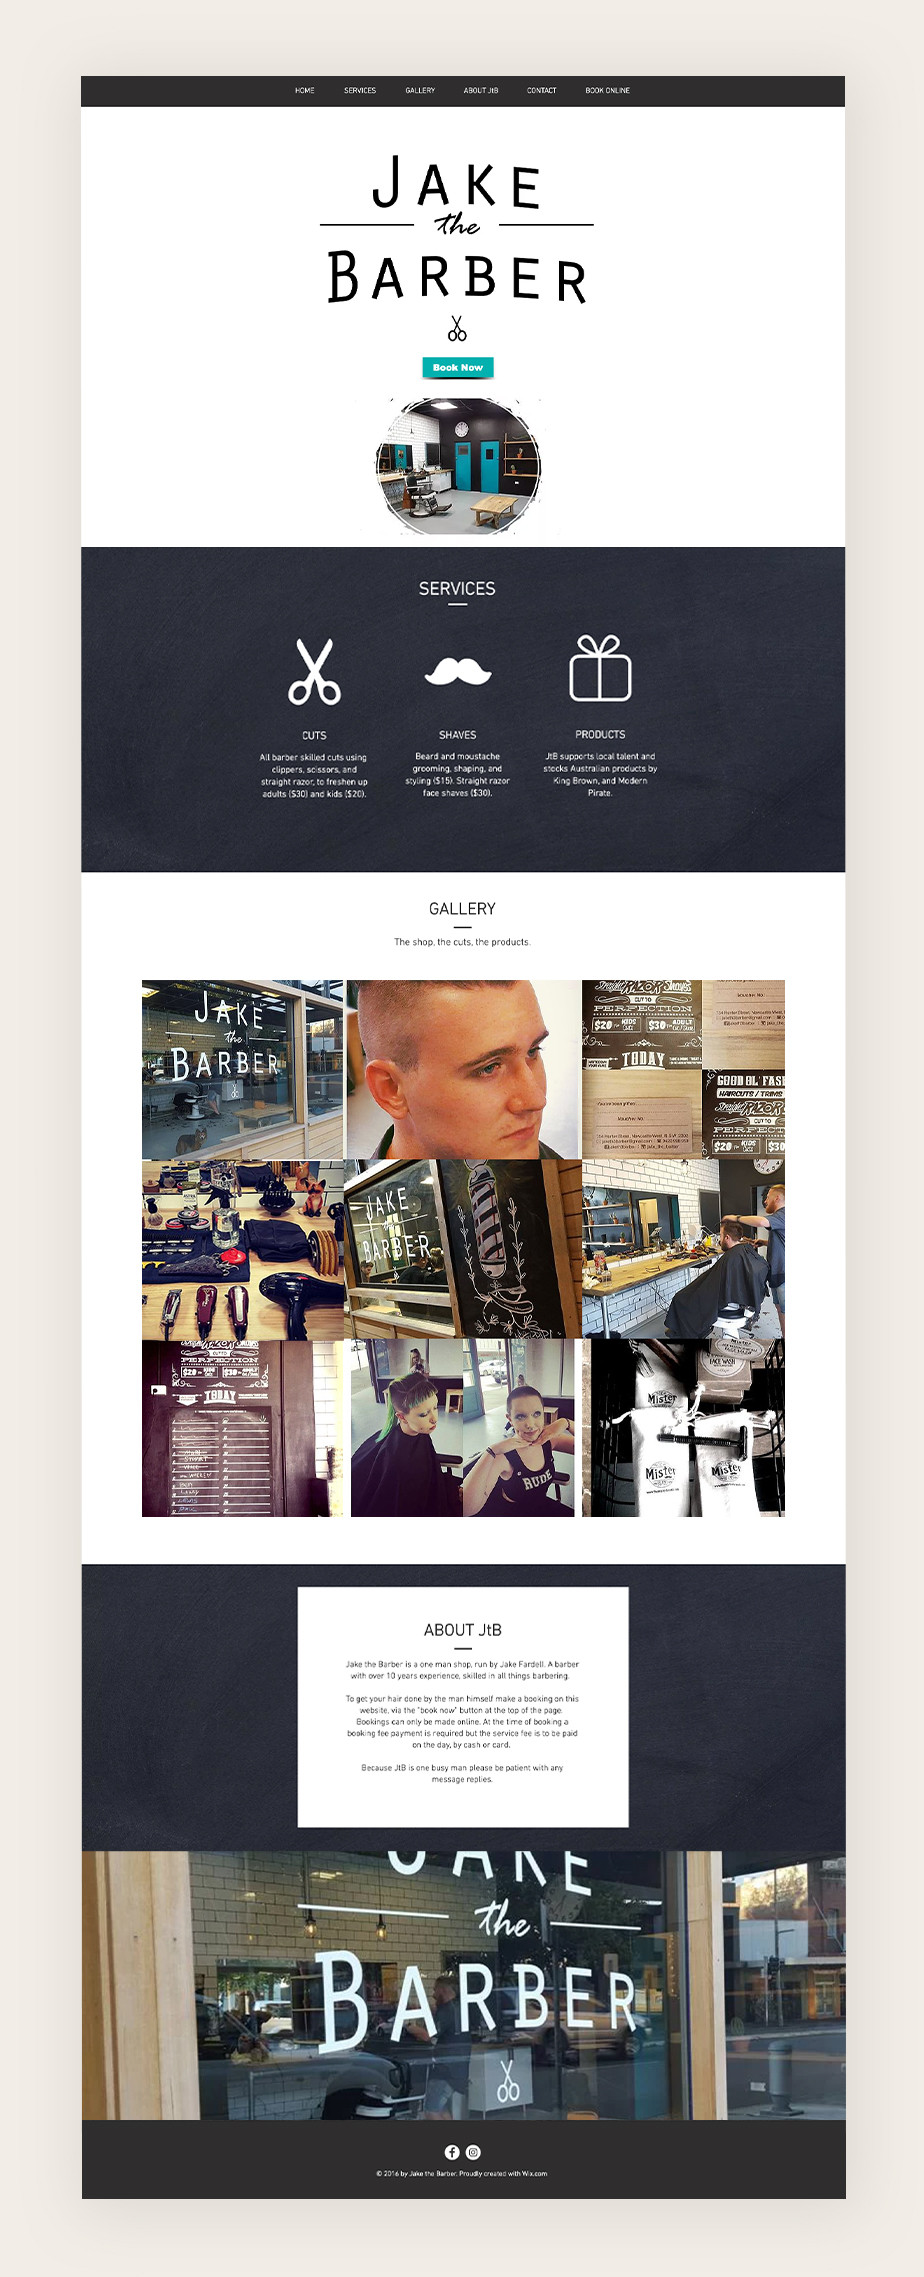 Wix Bookings examples: Jake the Barber